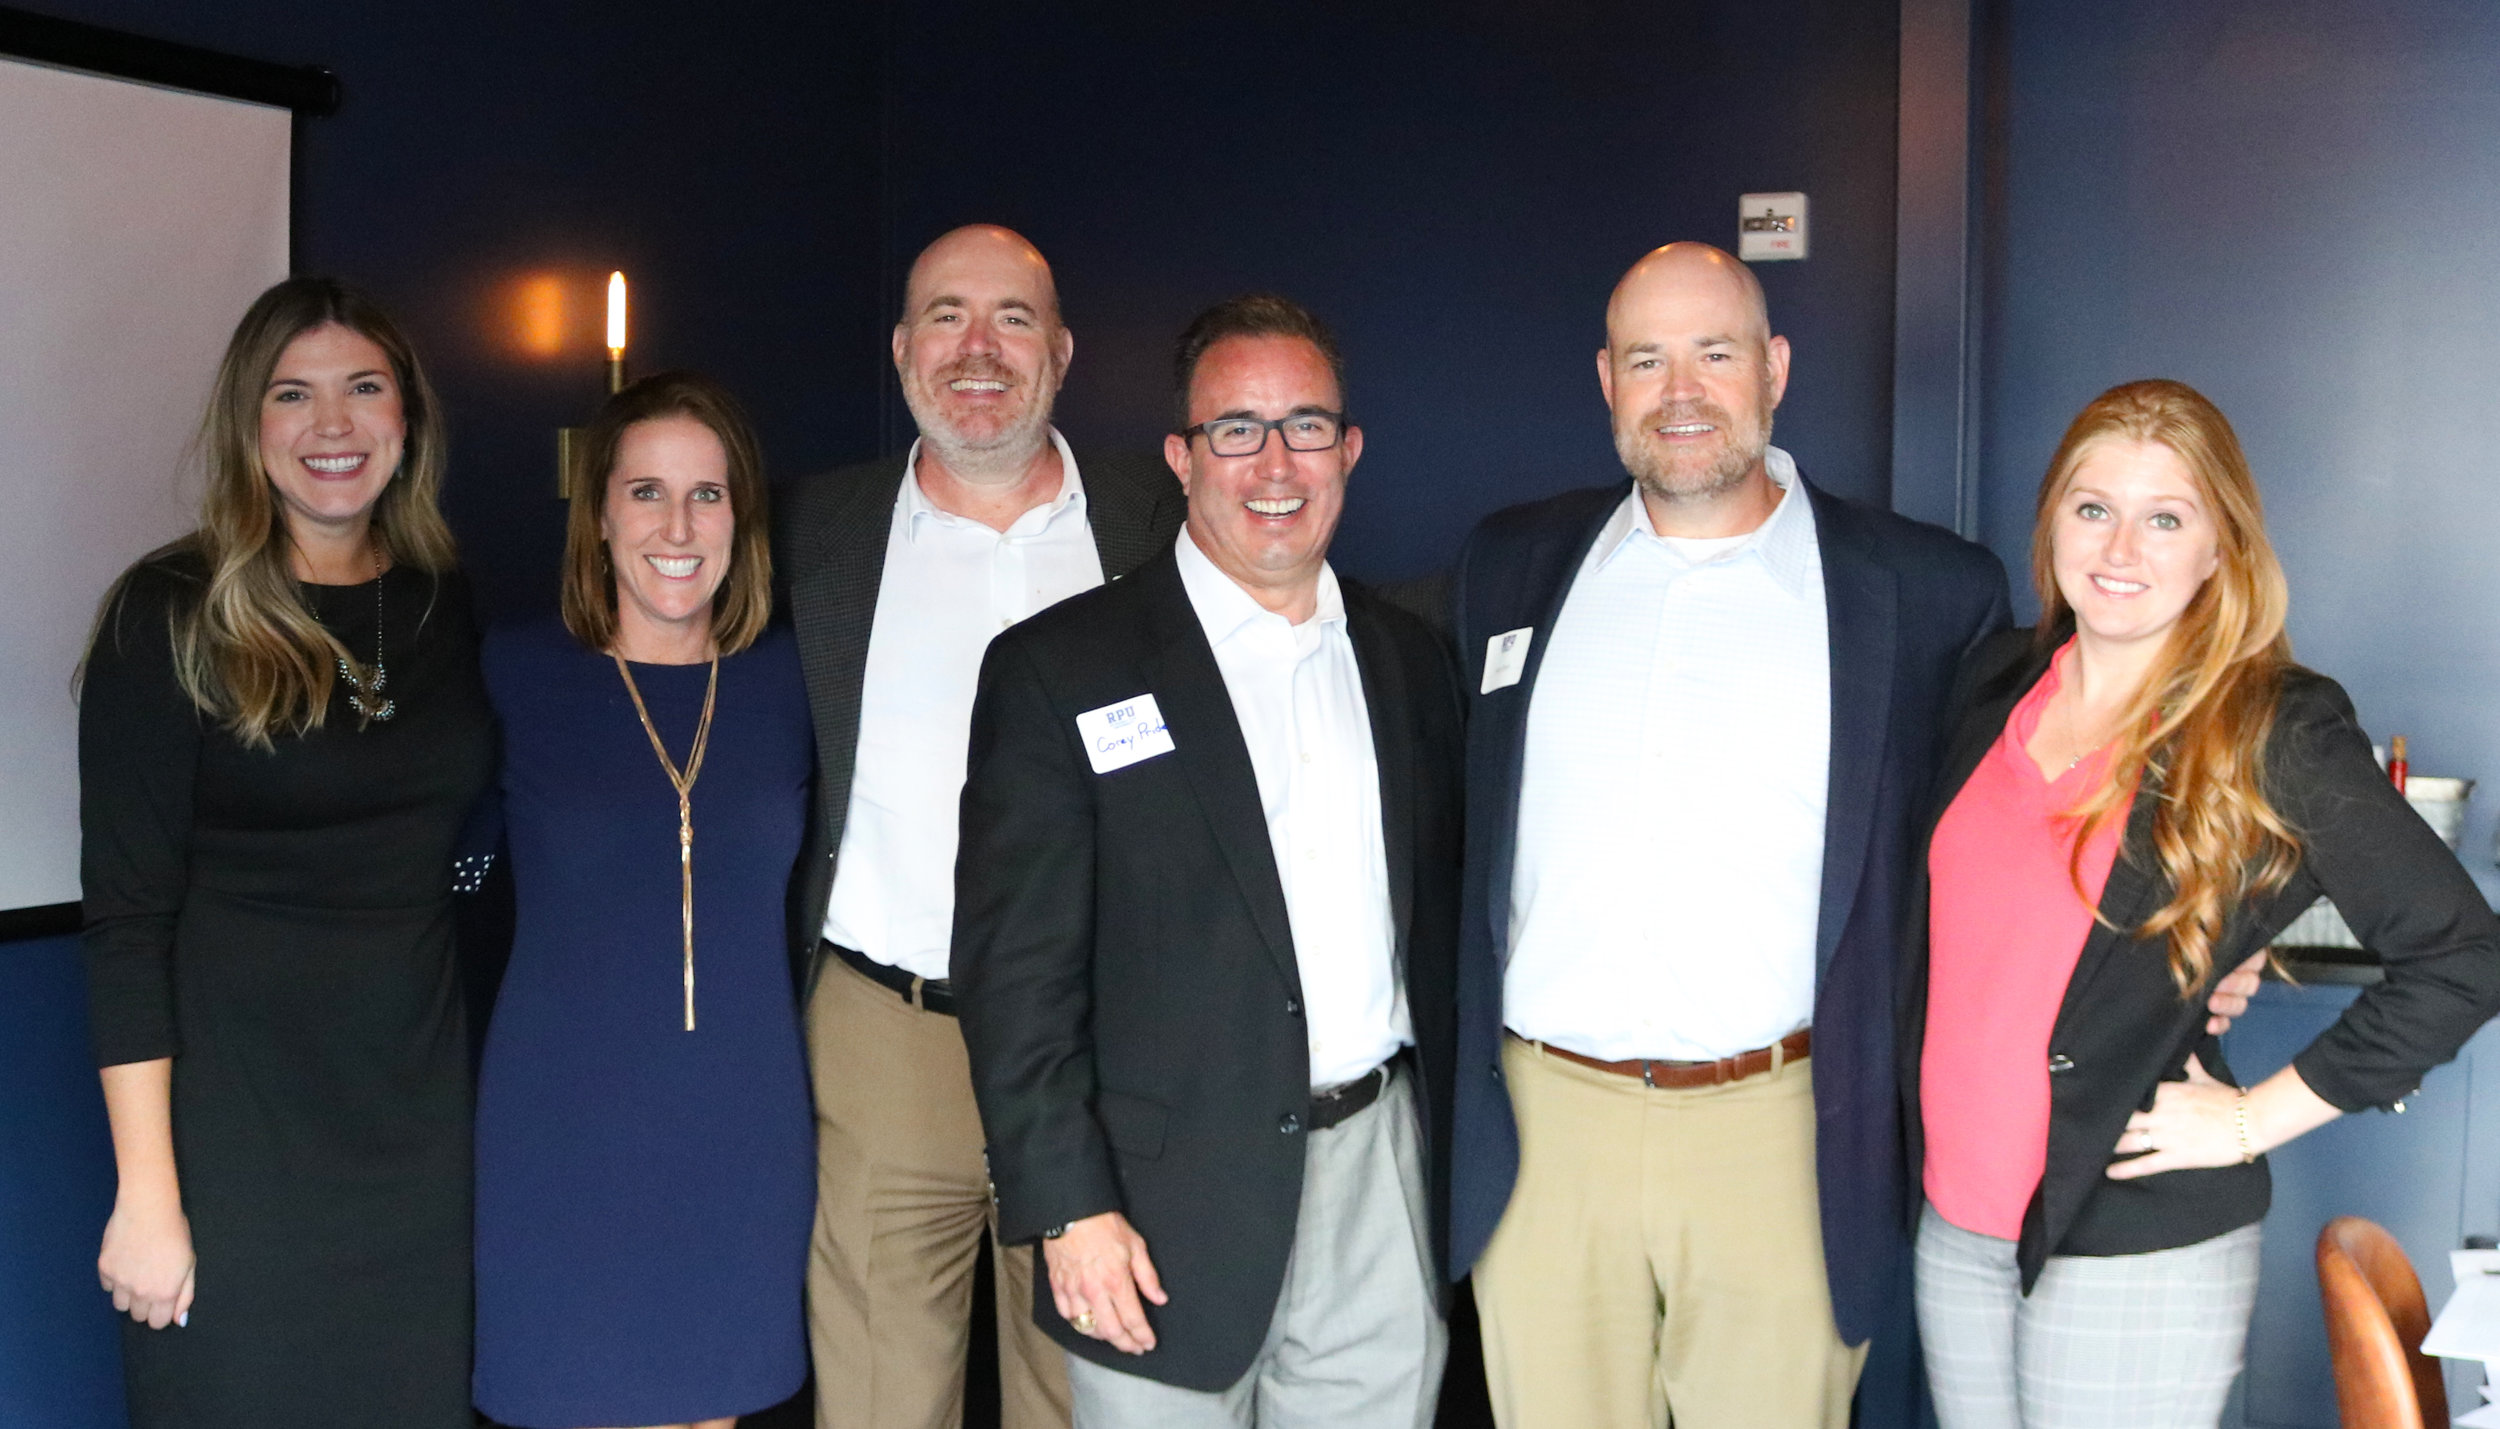 From L to R: Maggie Robinson and Melissa Terito with Sentinel, Bill Bush (Horizon), Corey Pride (J.P. Morgan), Andy Bush and Rachel Stewart with Horizon Financial Group